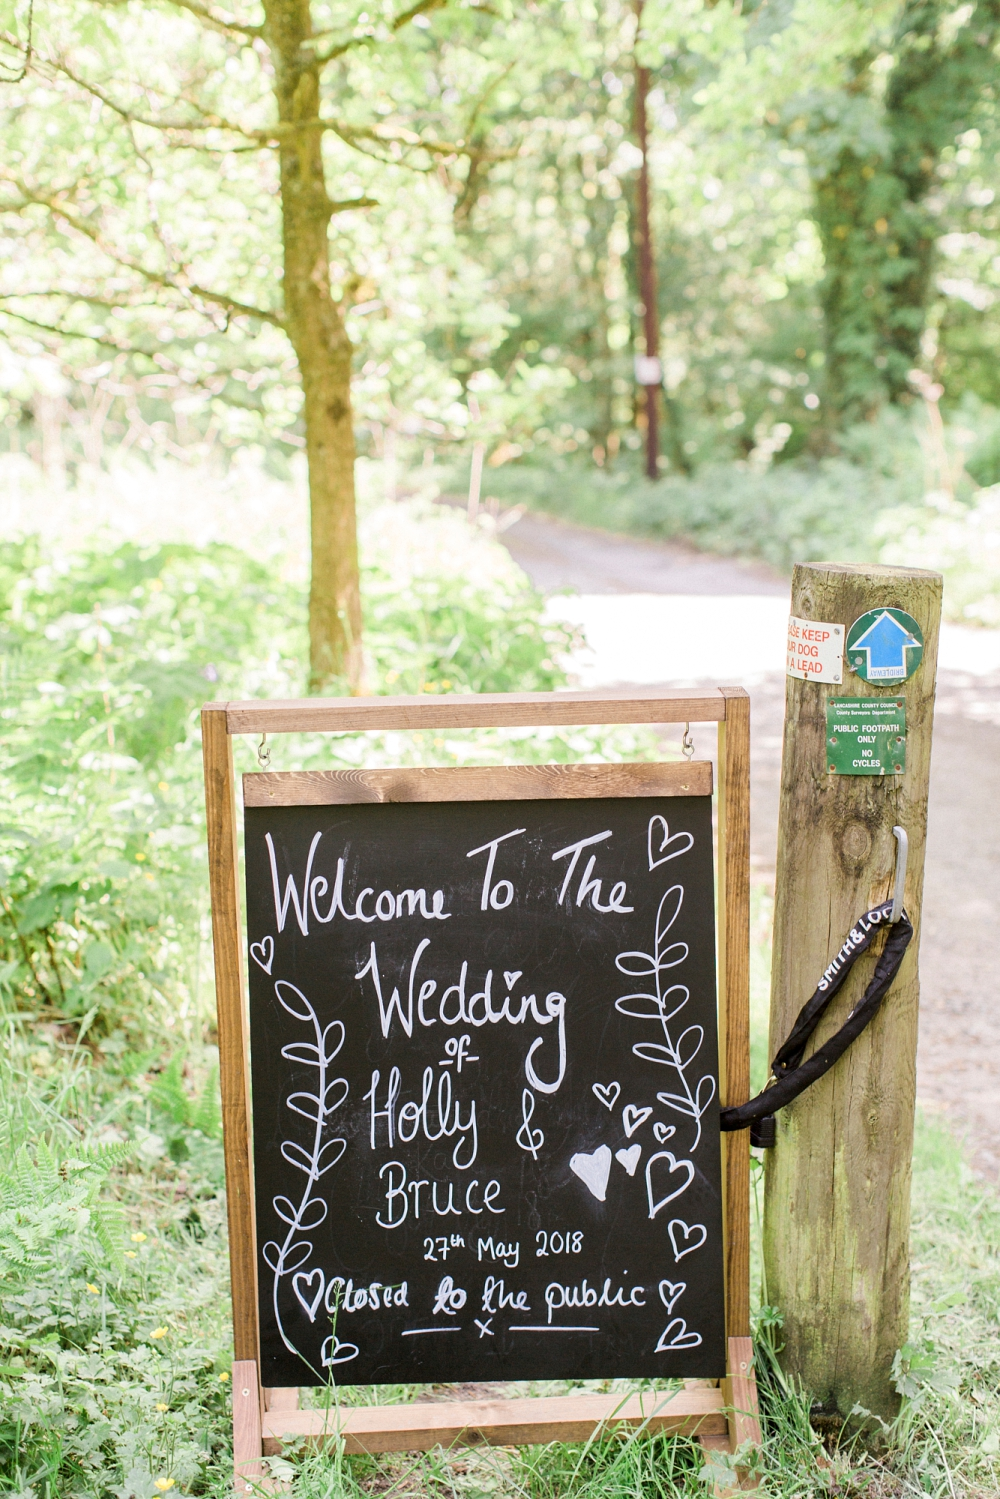 Holly and bruce chalkboard wedding sign